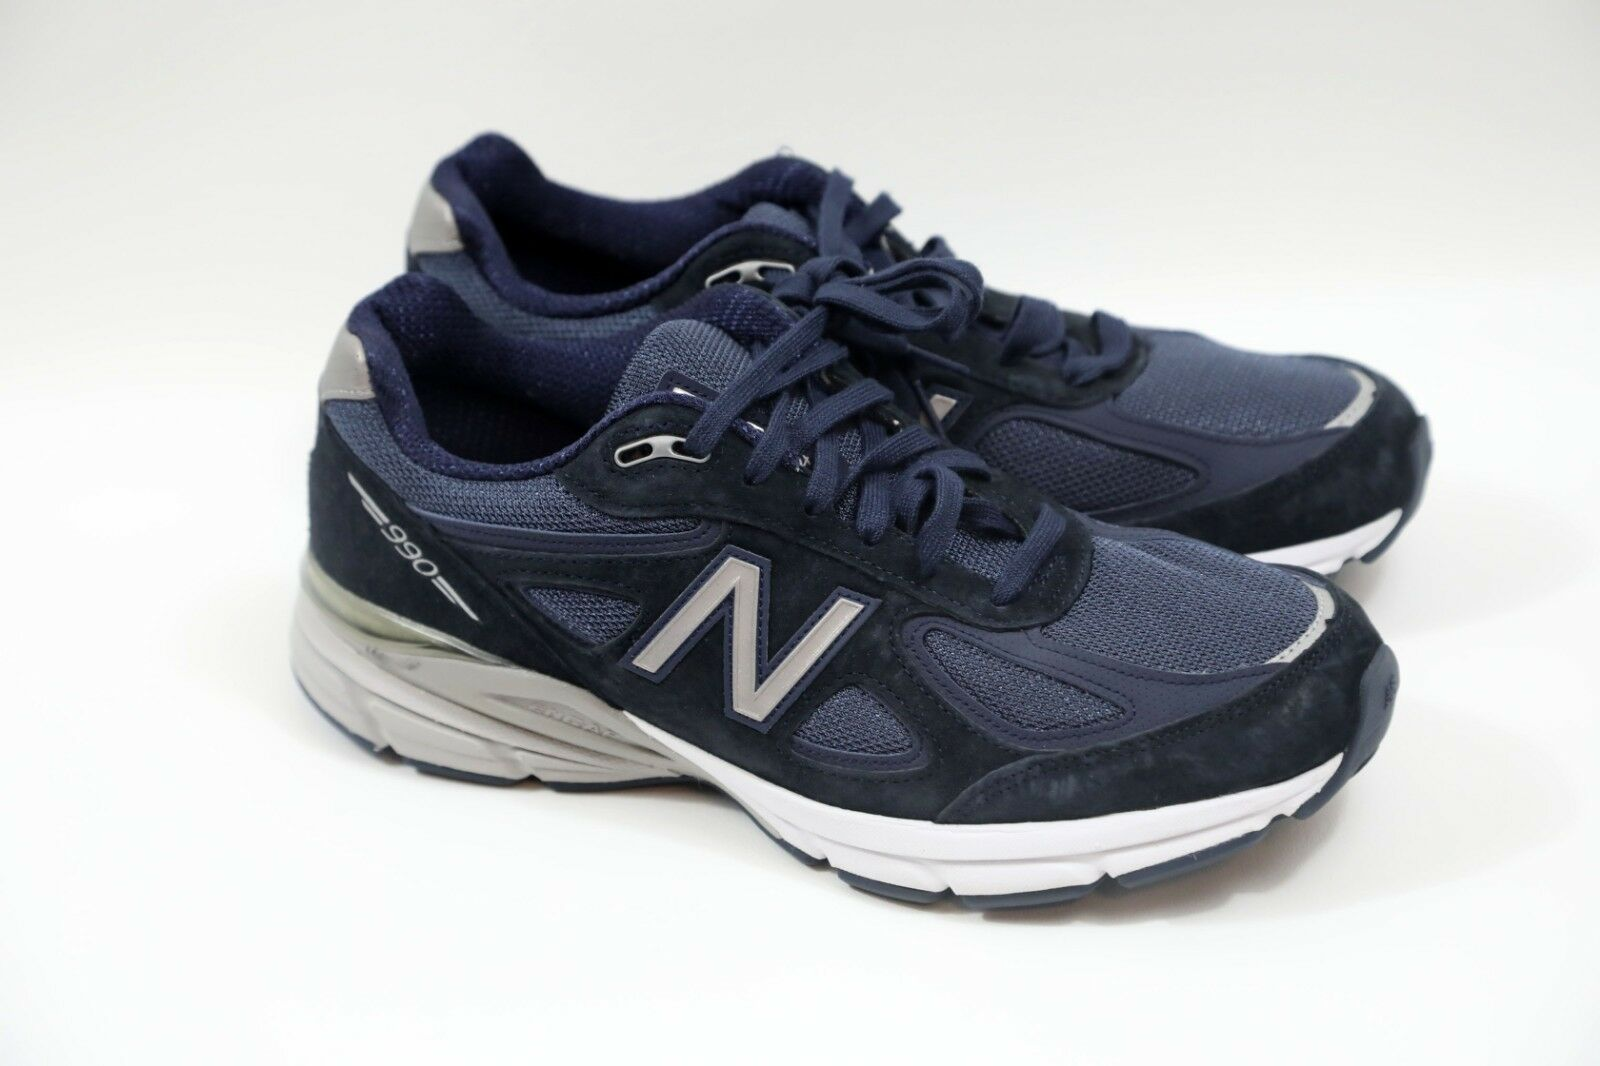 83 New Balance 990  Men bluee  Sneakers Size 10 D NWOB